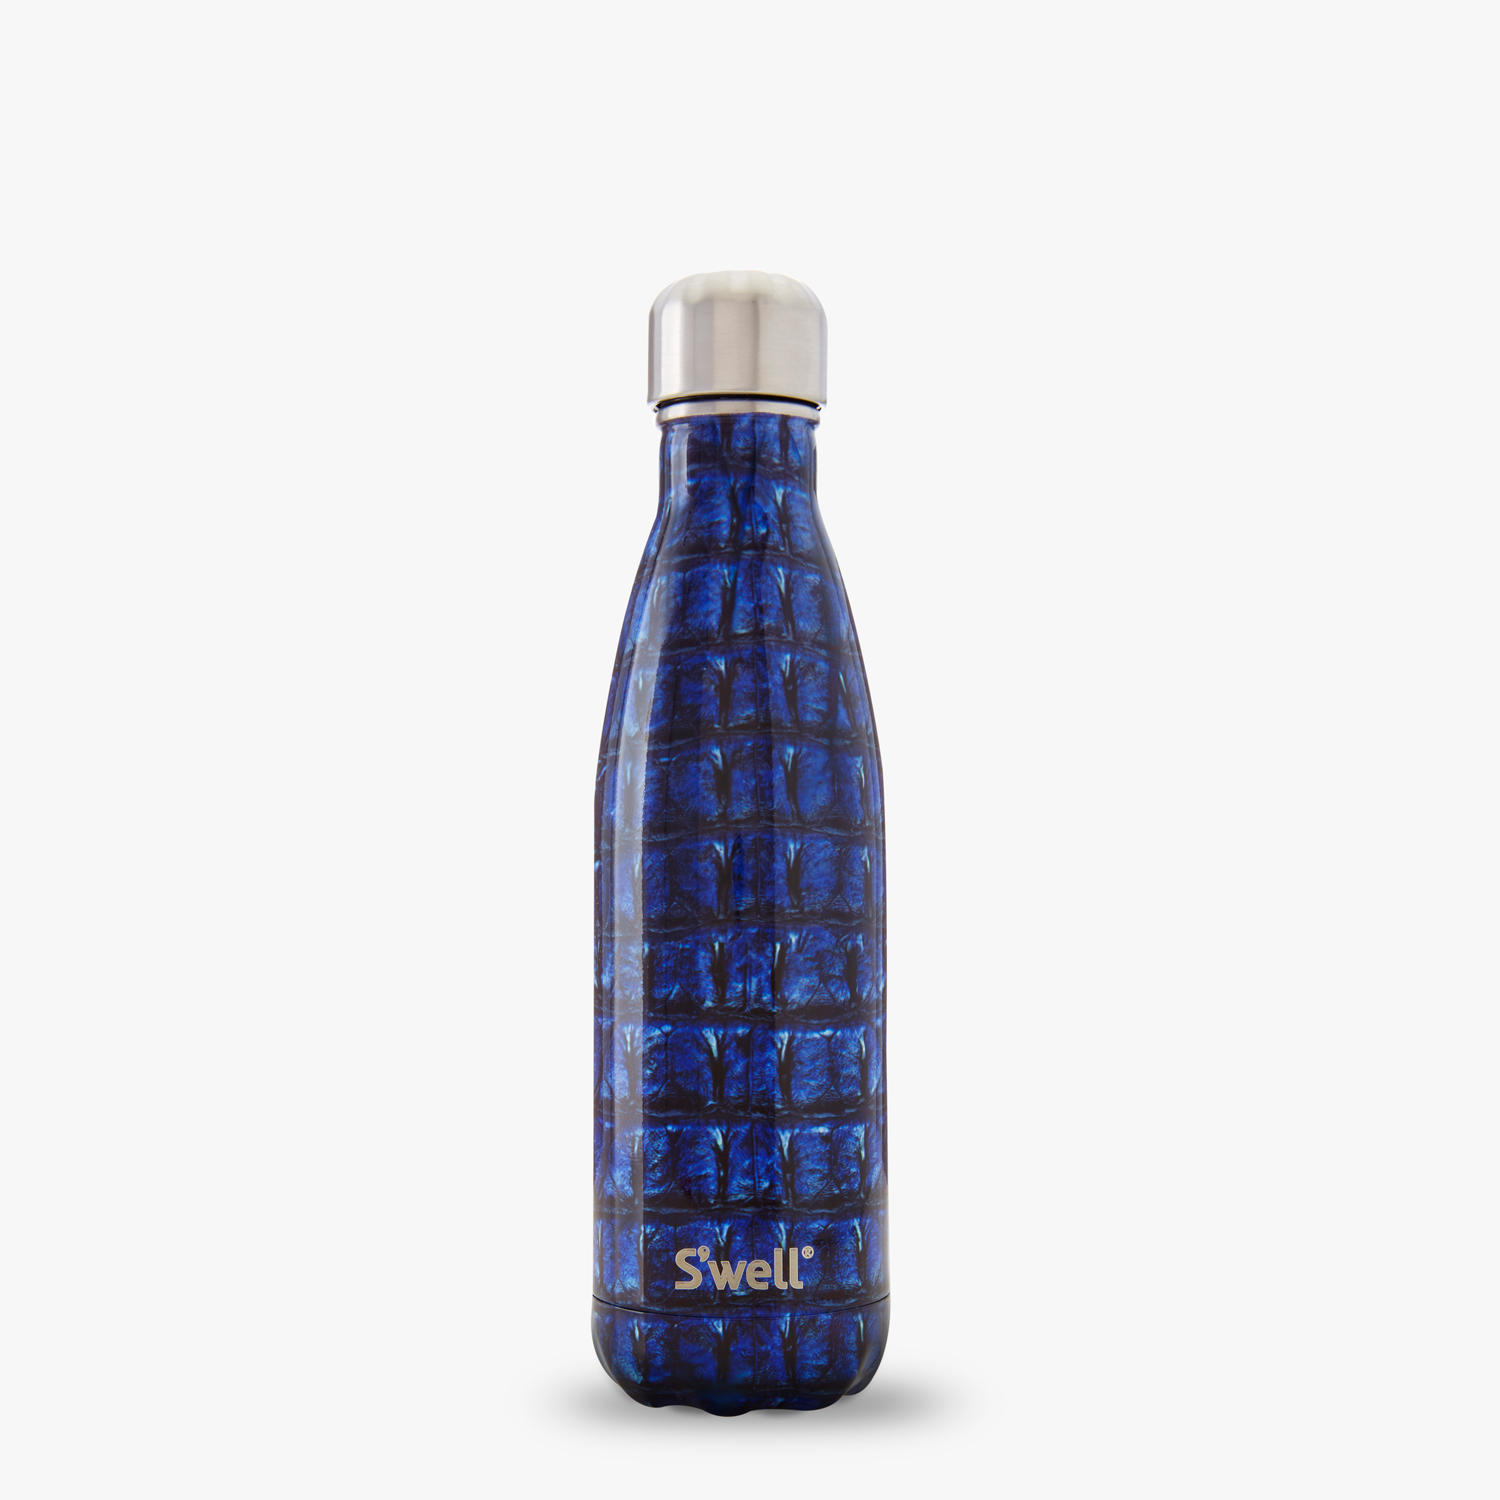 Well 174 official s well bottle navy from swellbottle com